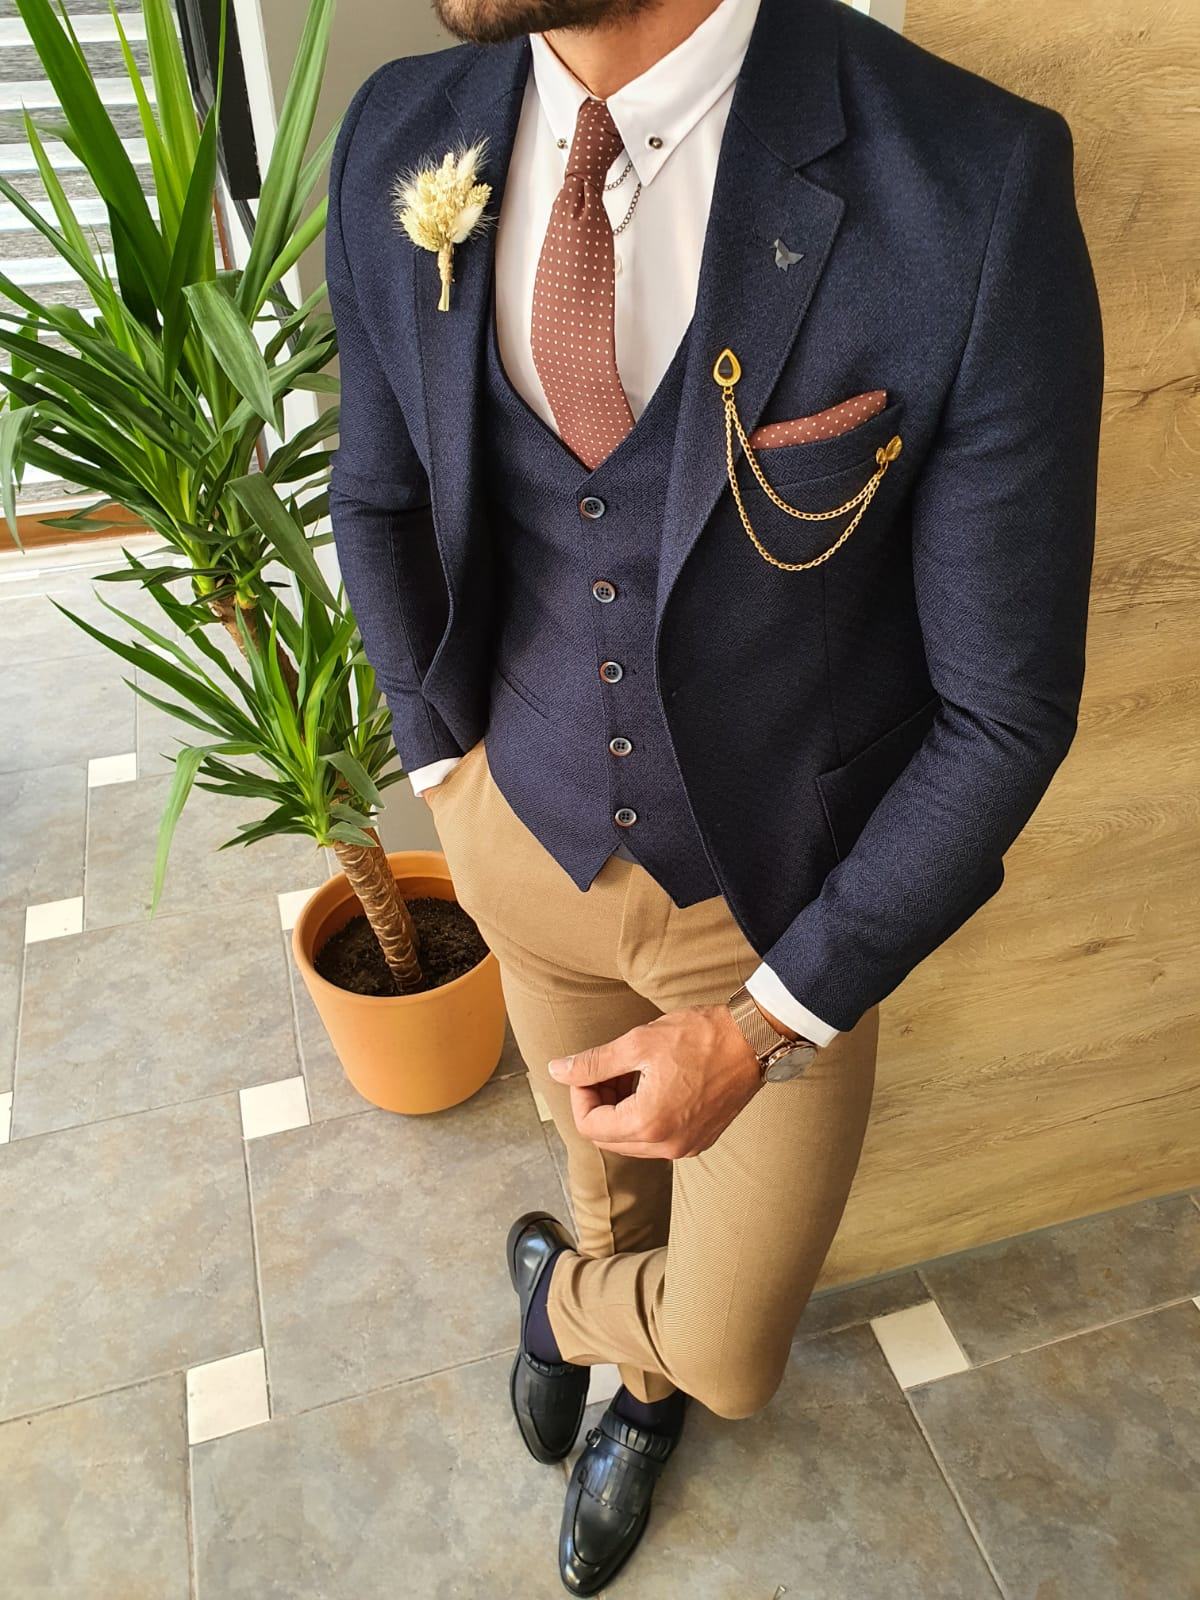 Types of Suit Every Man Should Own by GentWith Blog